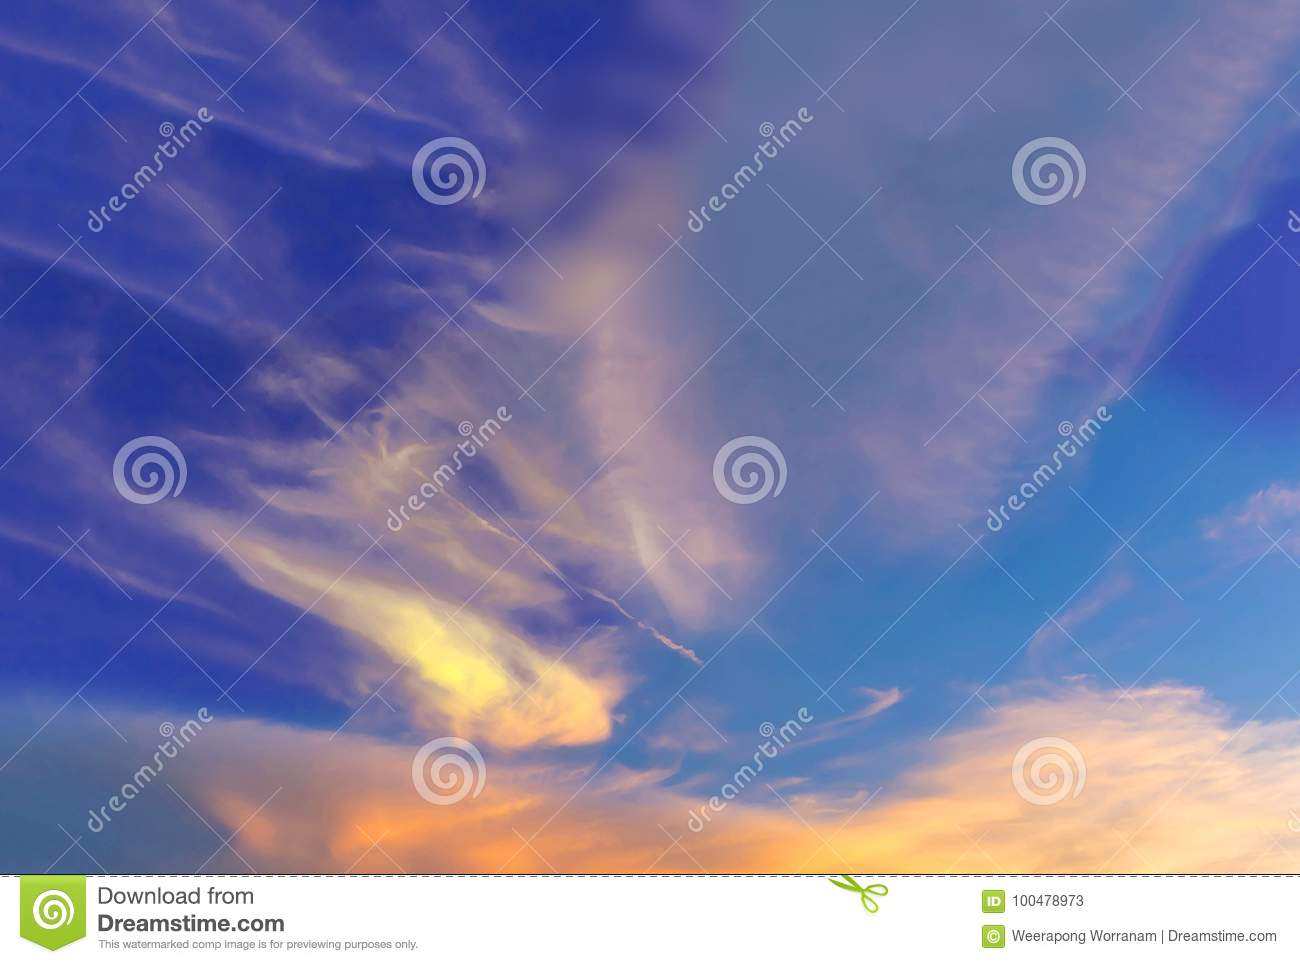 Abstract soft blurred and soft focus silhouette of the sunset with the colorful beautiful sky and cloud in the evening by the beam